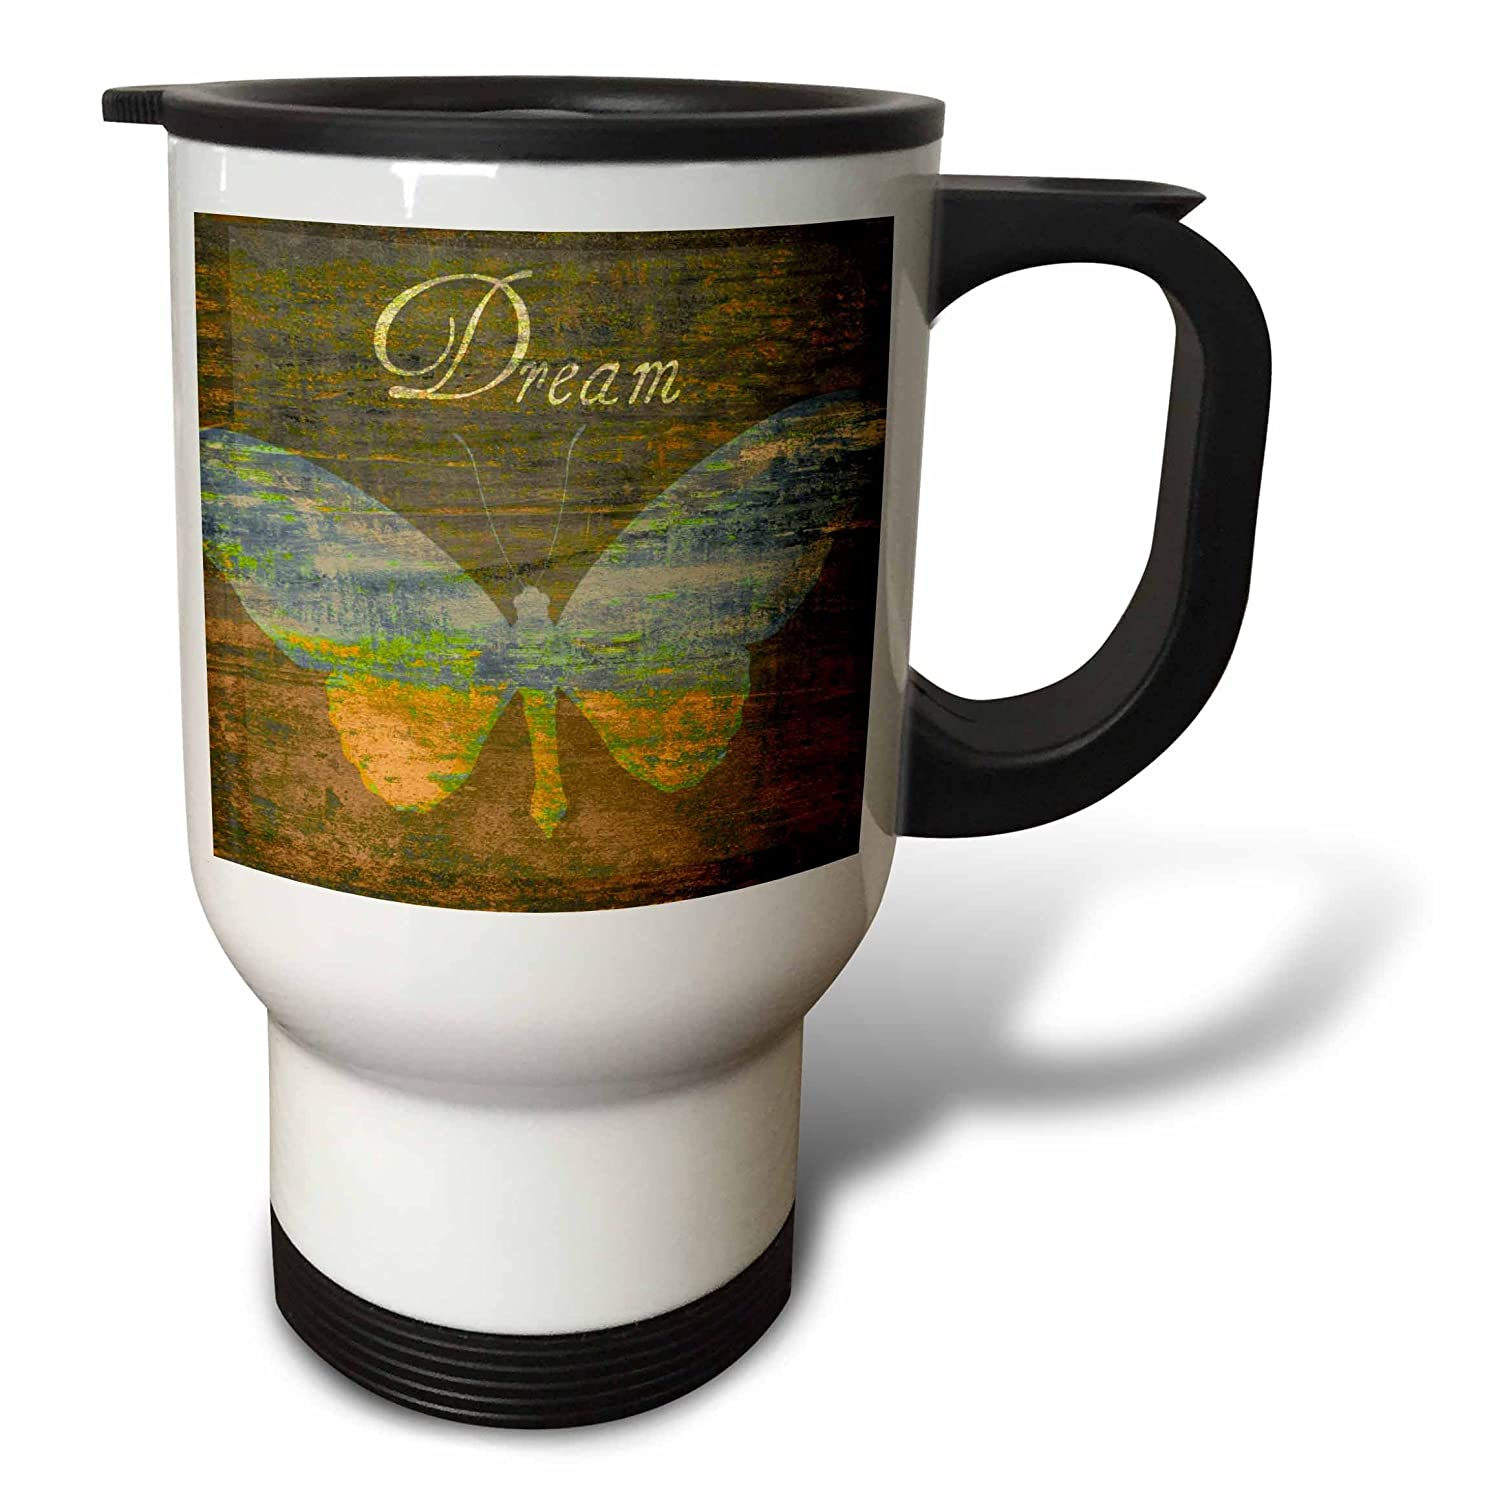 Buy 3drose Bronze Dream Butterfly Inspirational Words Art Stainless Steel Travel Mug 14 Ounce Online At Low Prices In India Amazon In